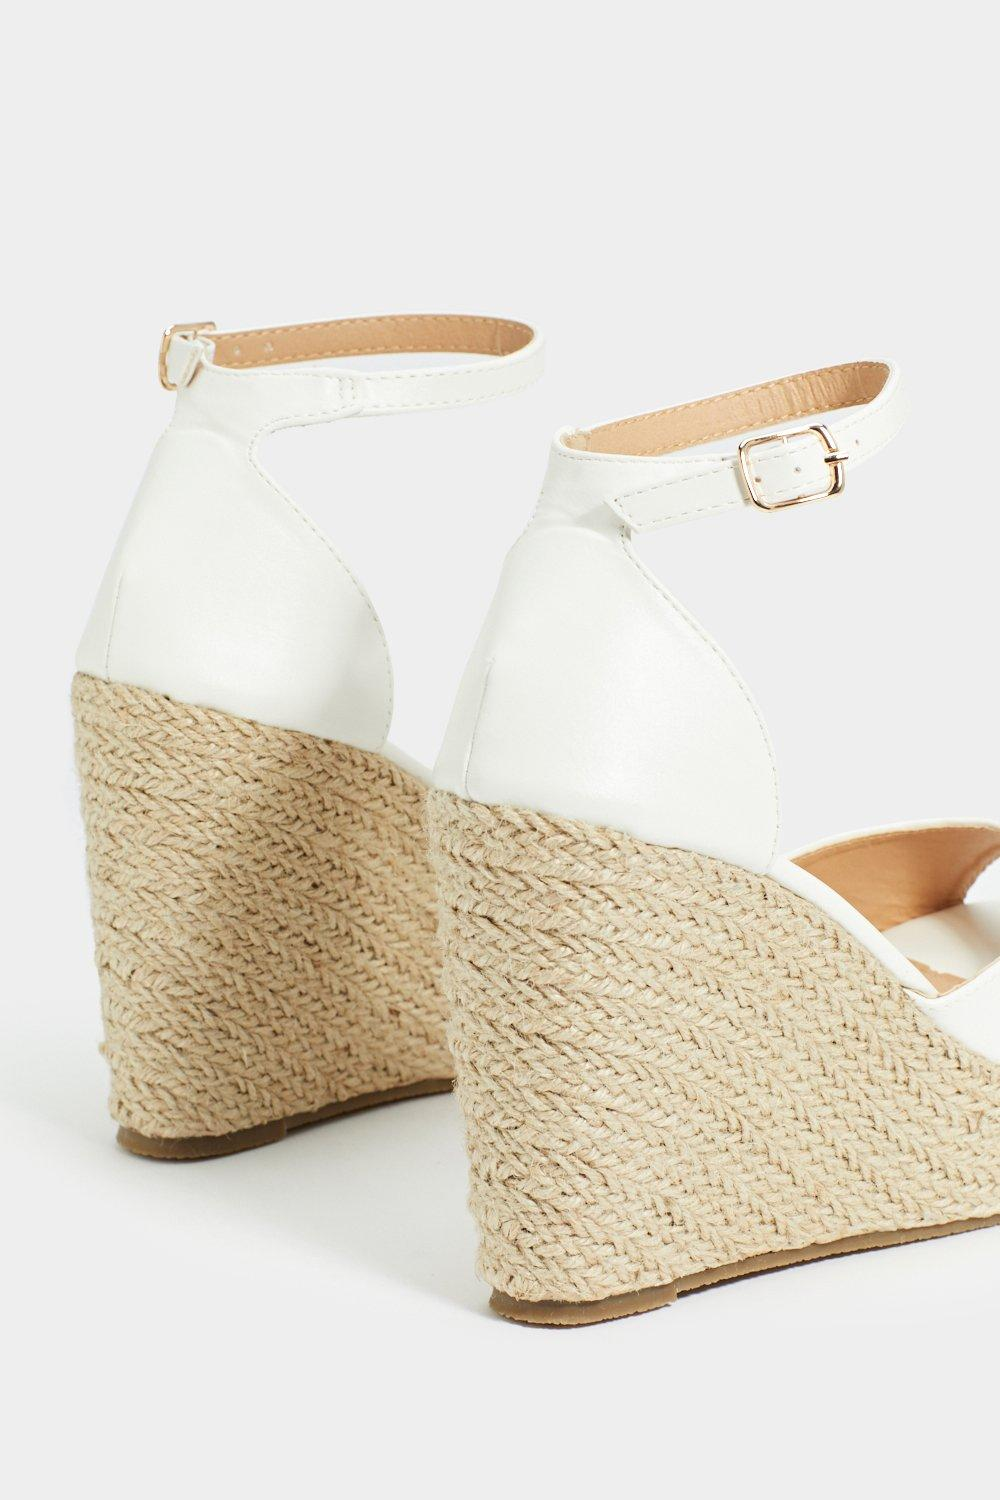 Inexpensive excellent online Sunny Afternoon Espadrille Wedge Sandal sale official site fake sale online dvGWw